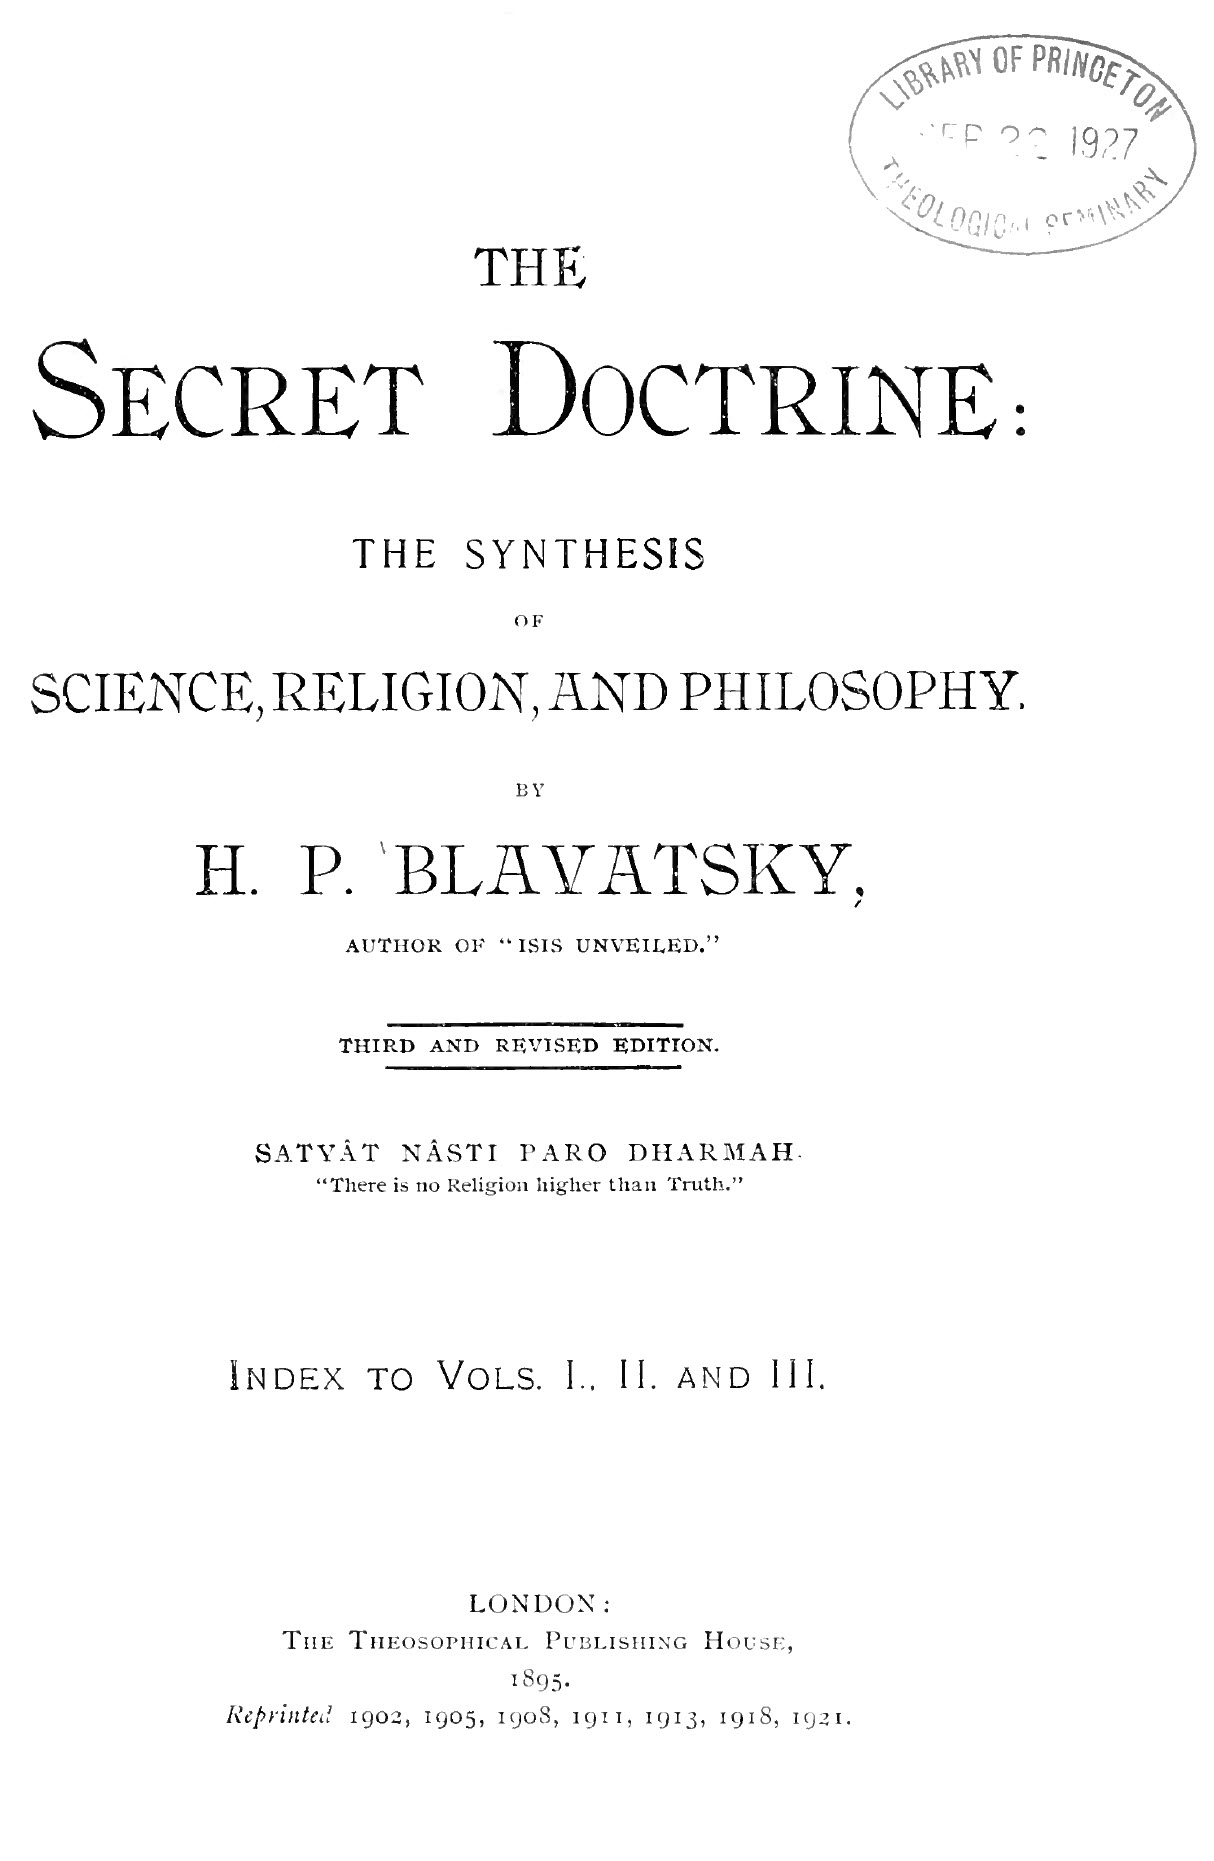 Index to Blavatsky, Secret Doctrine, 3rd Edition, PDF